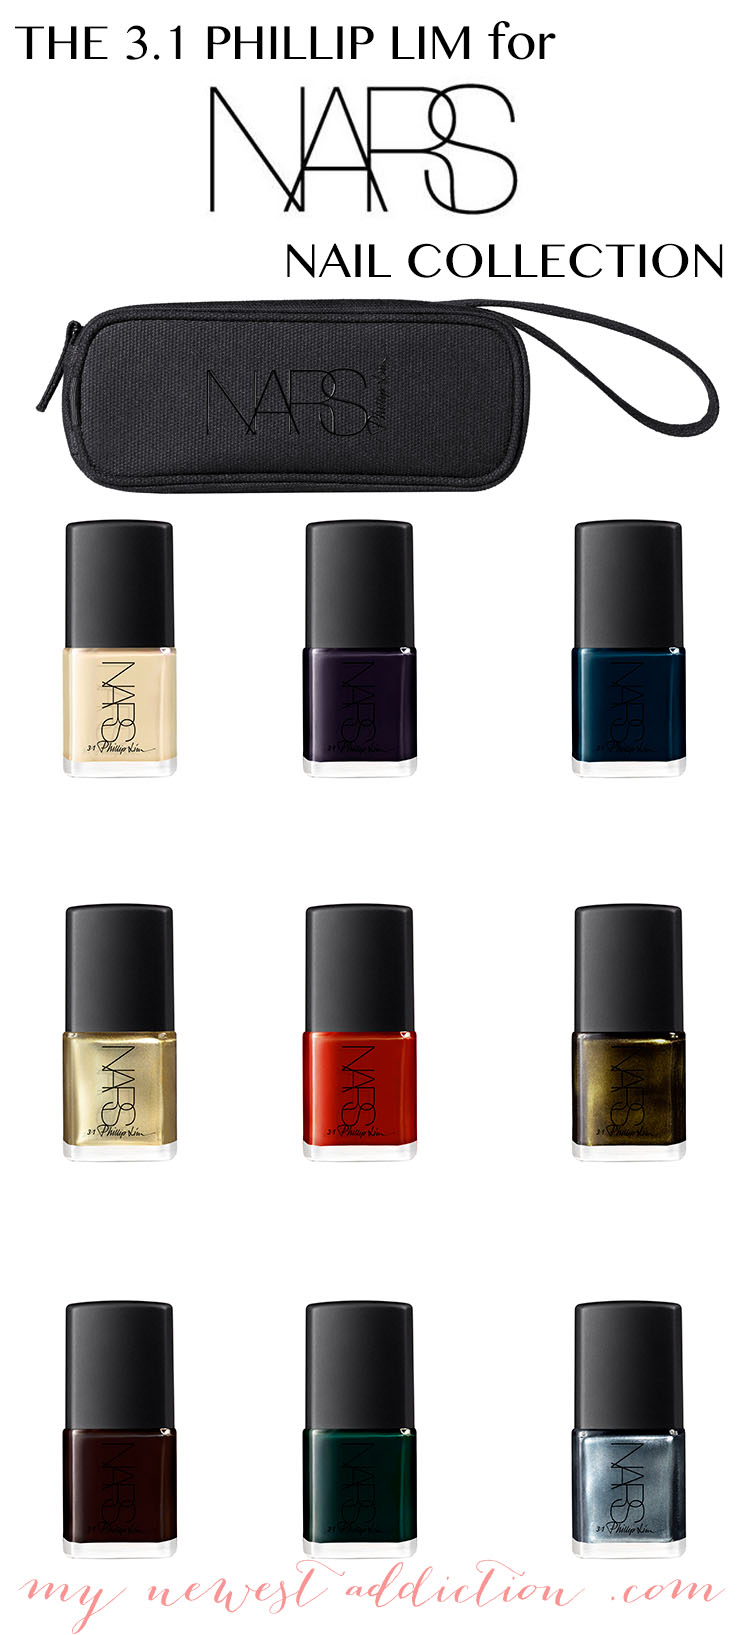 the phillip lim for nars nail collection